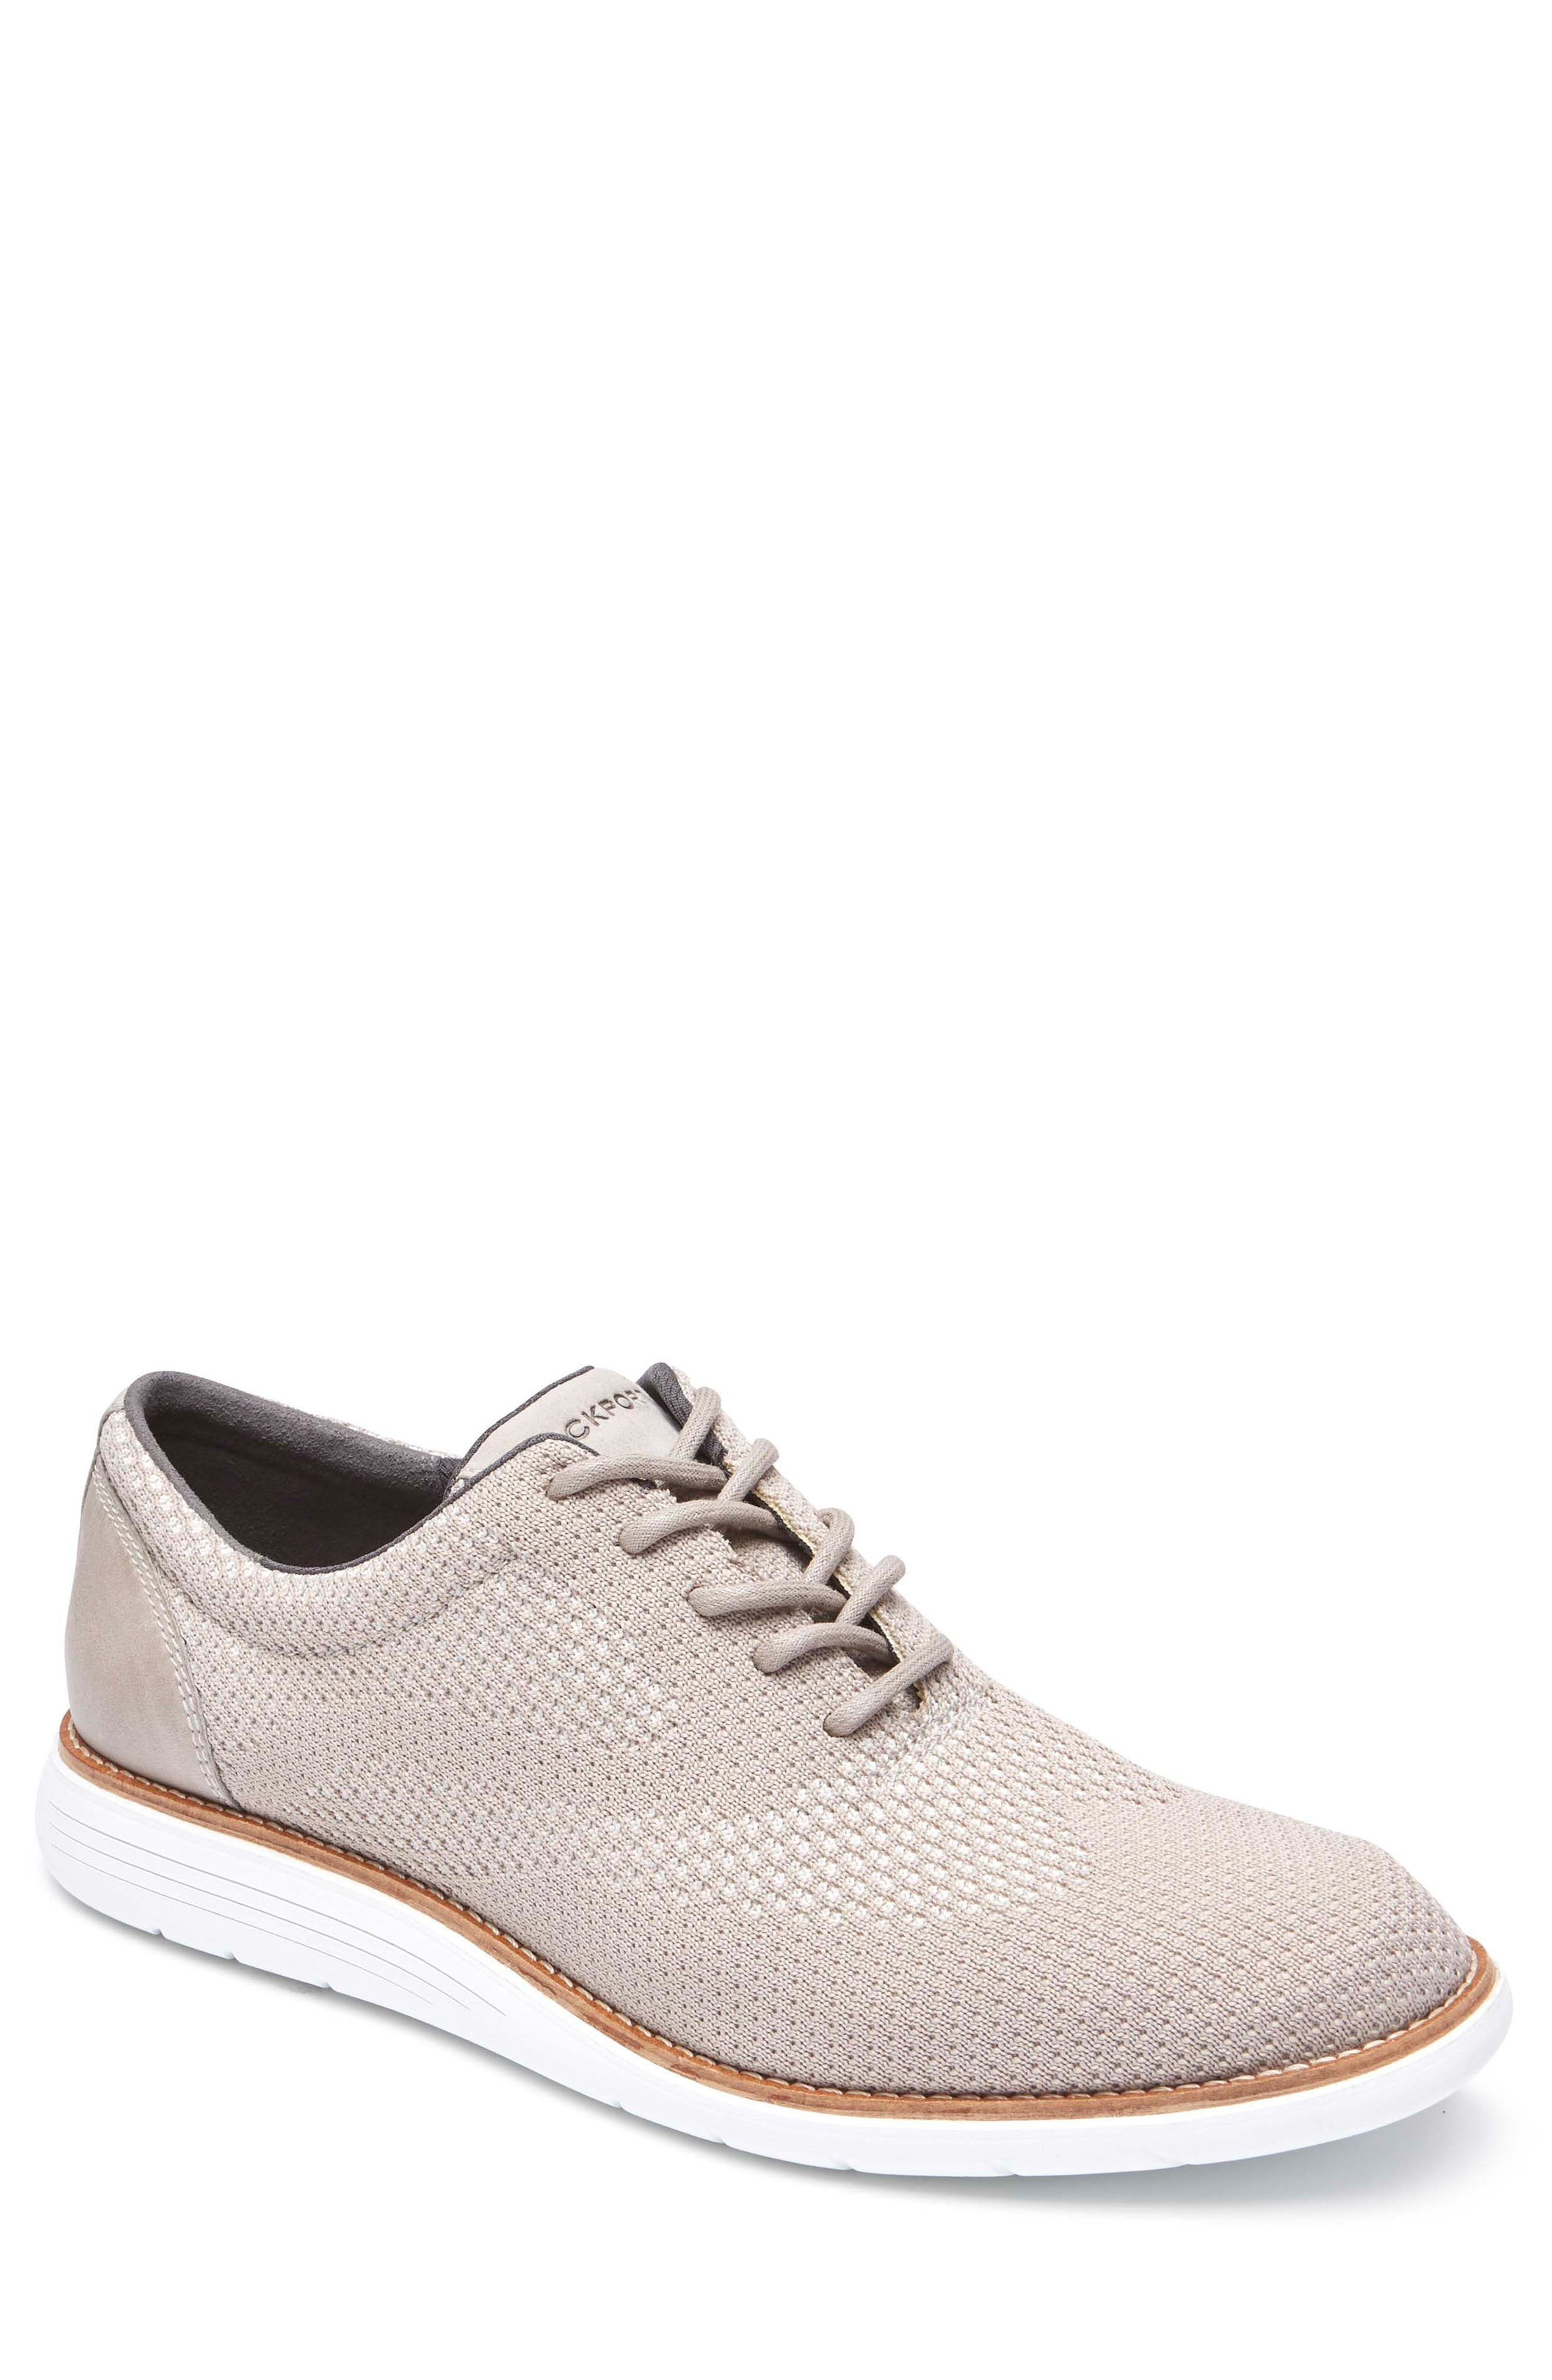 Total Motion Sport Oxford,                             Main thumbnail 1, color,                             ROCKSAND LEATHER